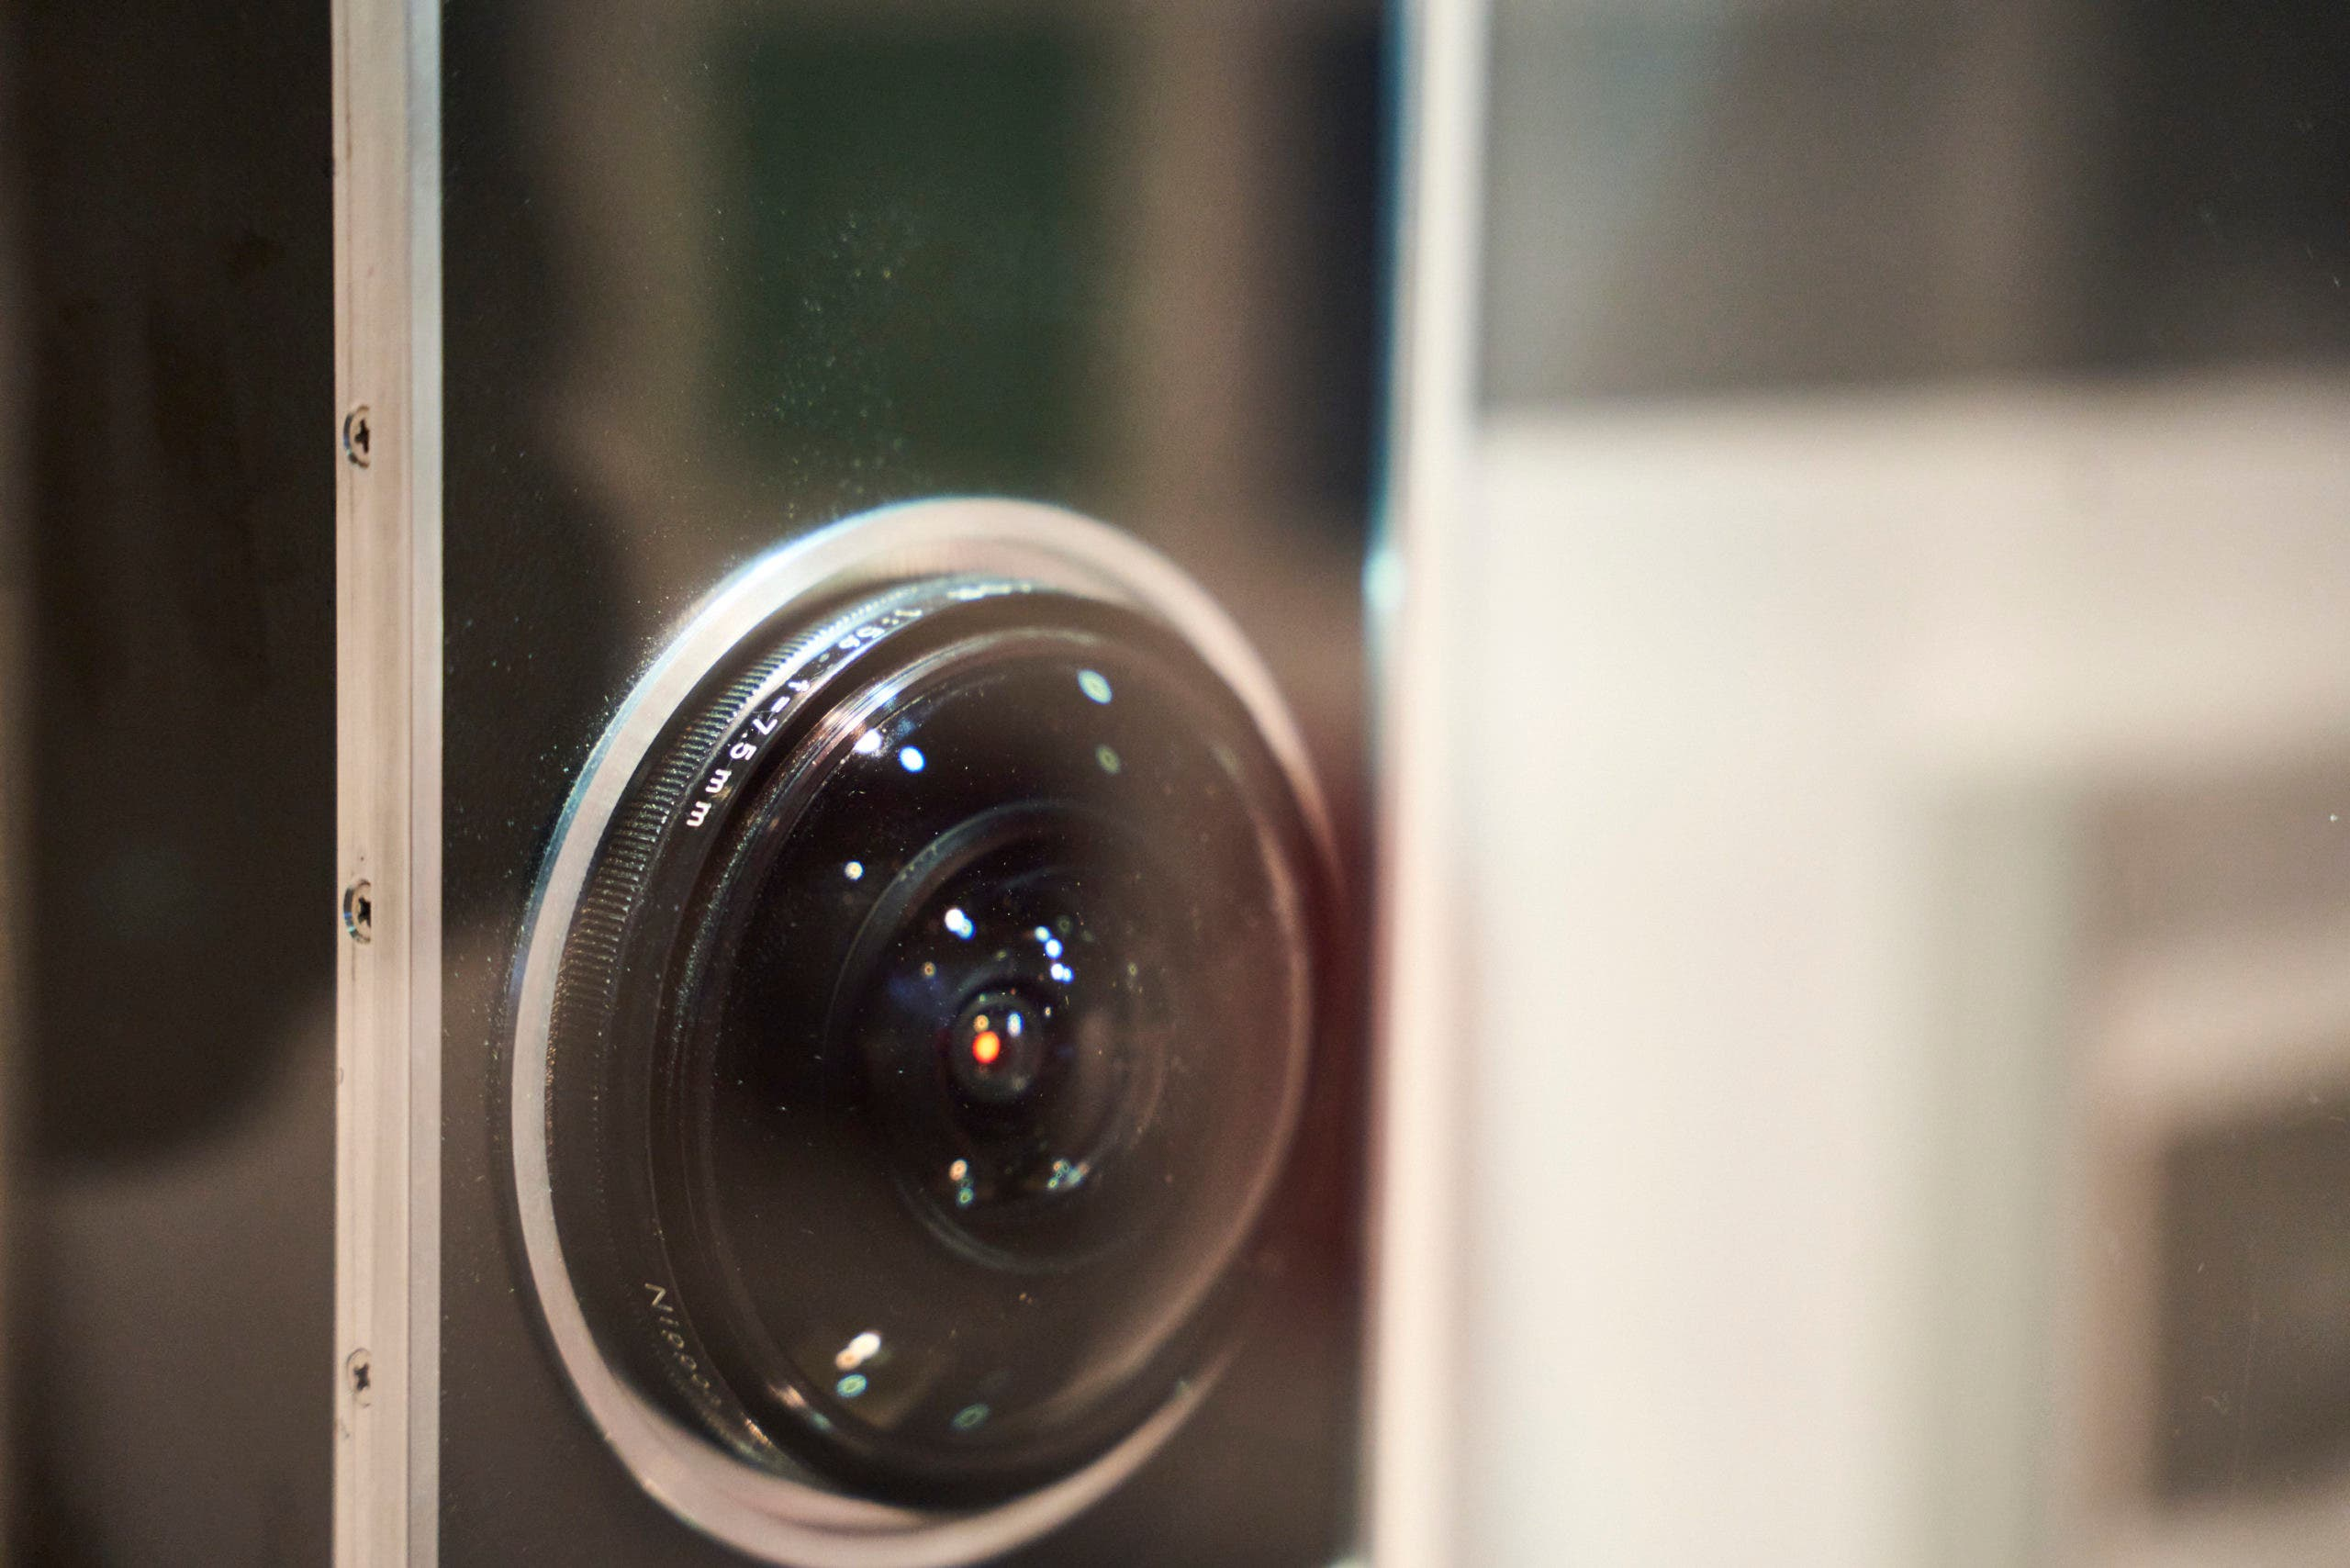 HAL 9000: How This Nikon Fisheye Lens Inspired Hollywood and Culture